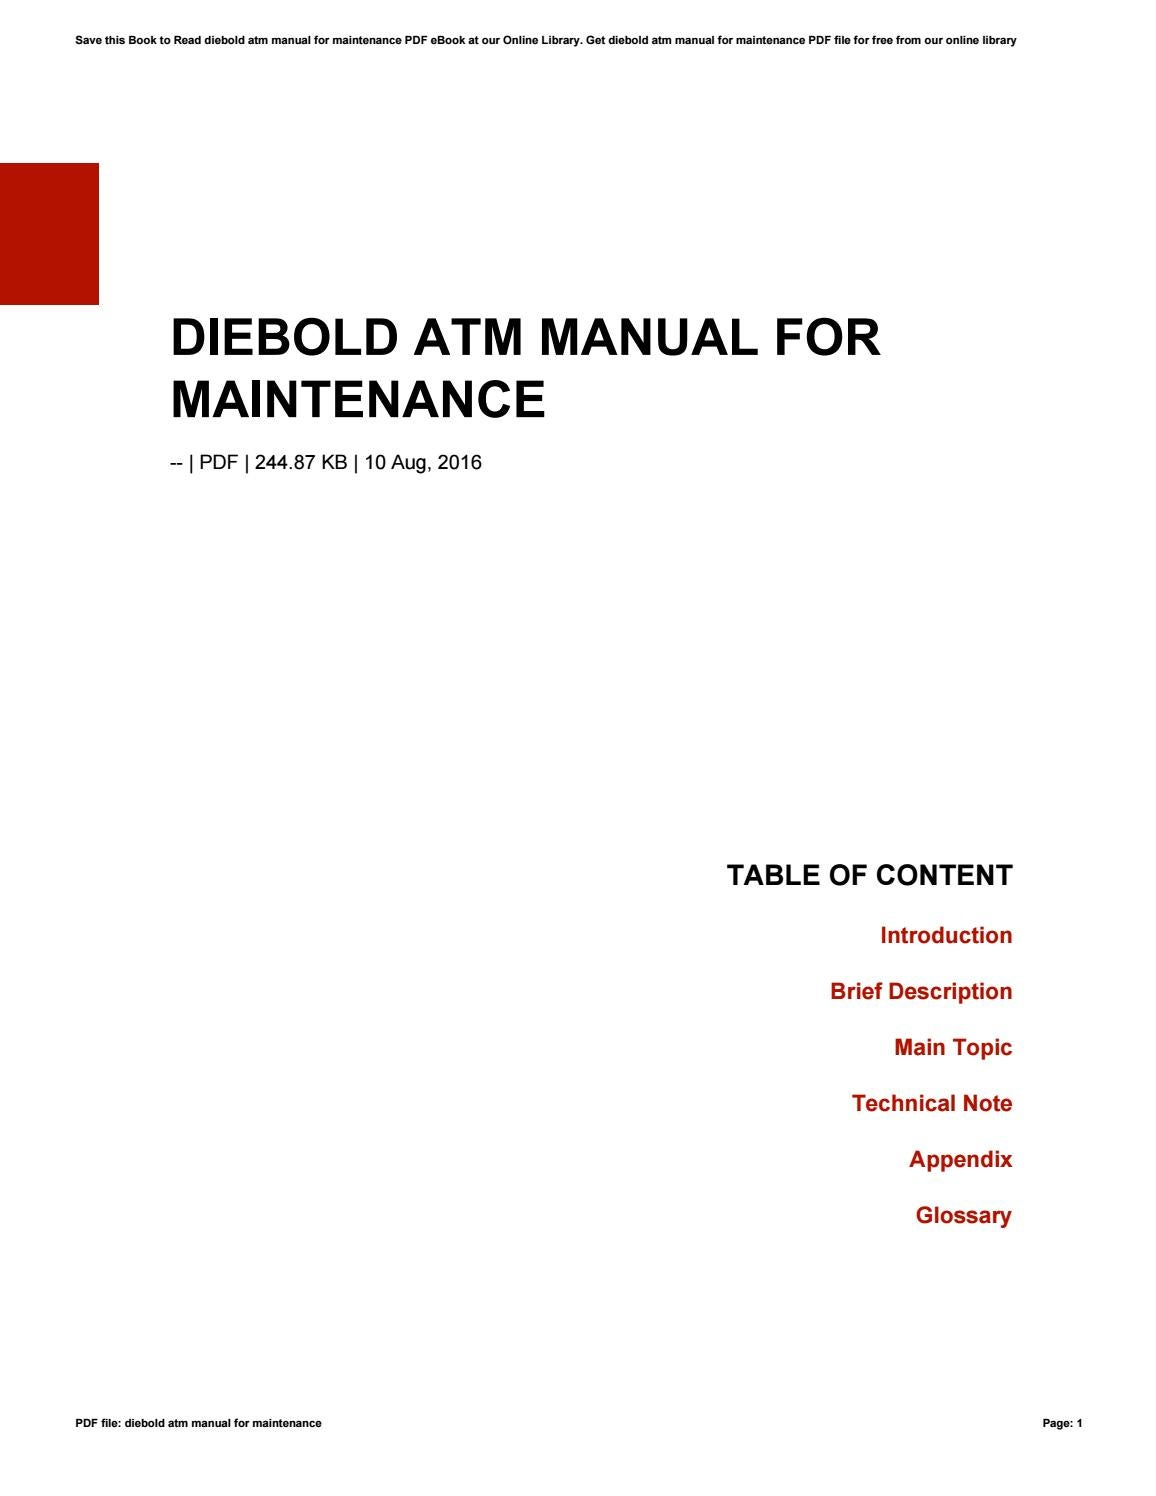 Diebold atm manual for maintenance by ElizabethCoffman2627